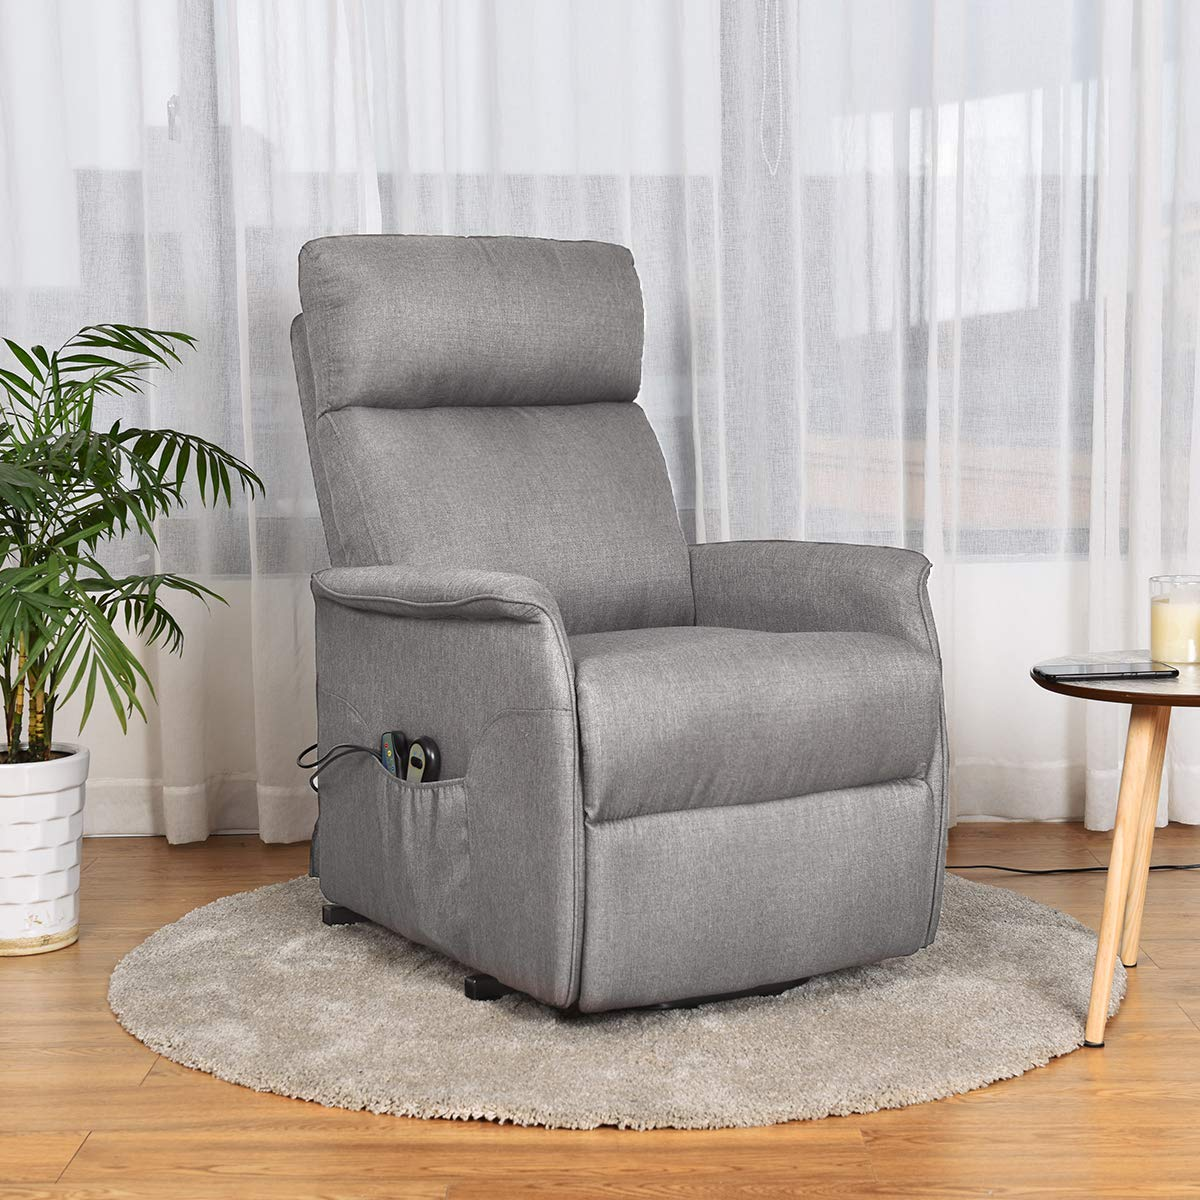 Giantex Power Lift Massage Recliner Chair for Elderly, Soft Fabric Sofa Chair, Heavy Padded Cushion, Remote Control, Home Theater Seating, Leisure Lounge w Side Pocket, Living Room Office Grey